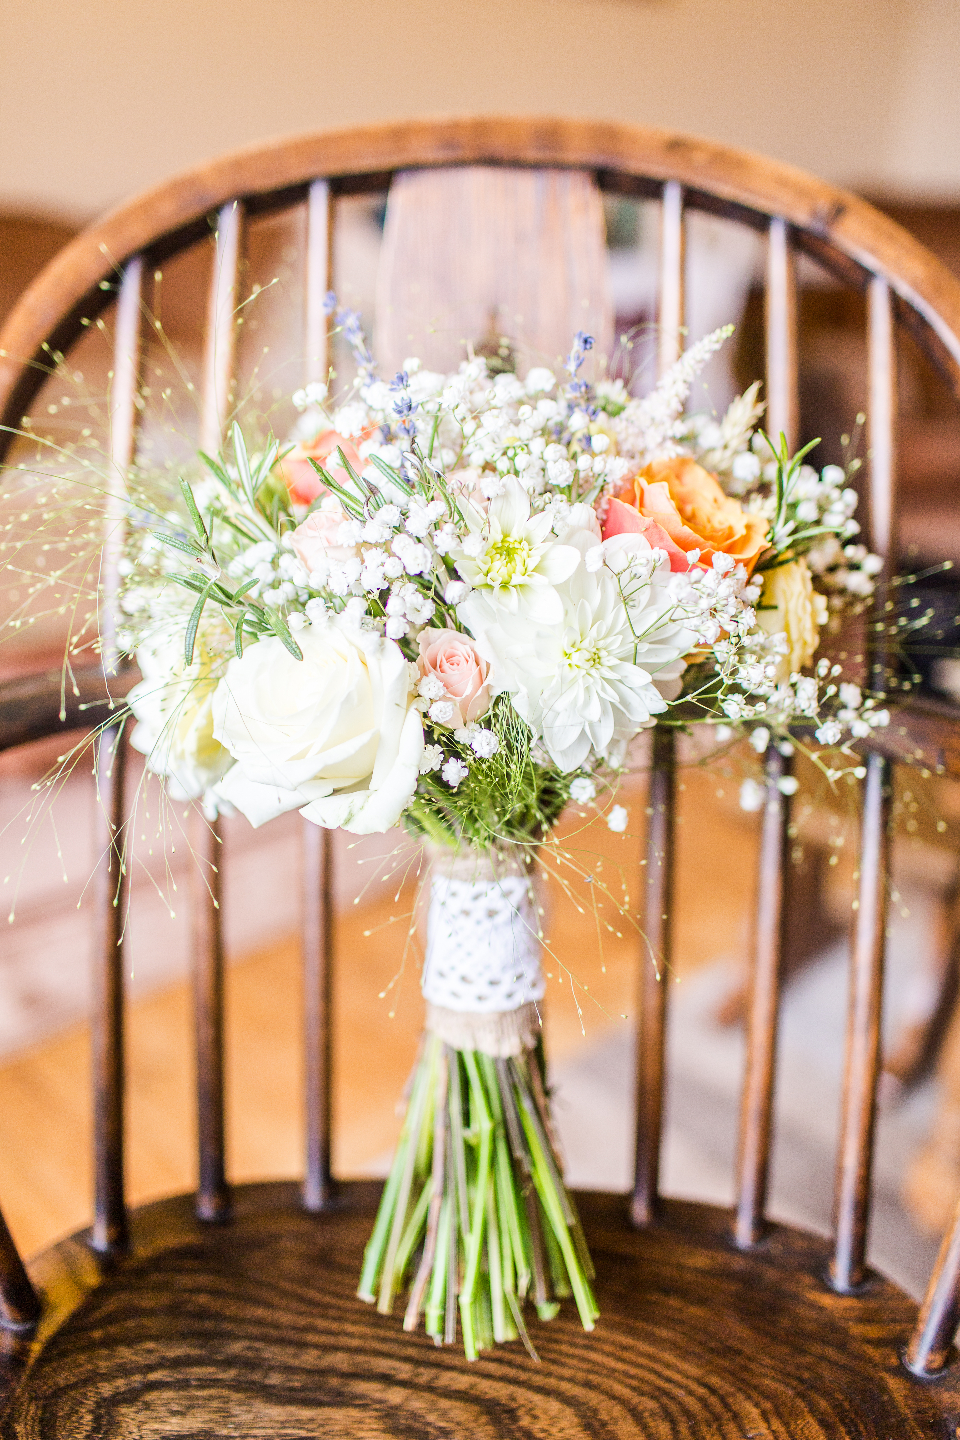 wedding flowers bouquet rustic wedding chair celebration nature bunch flora fauna